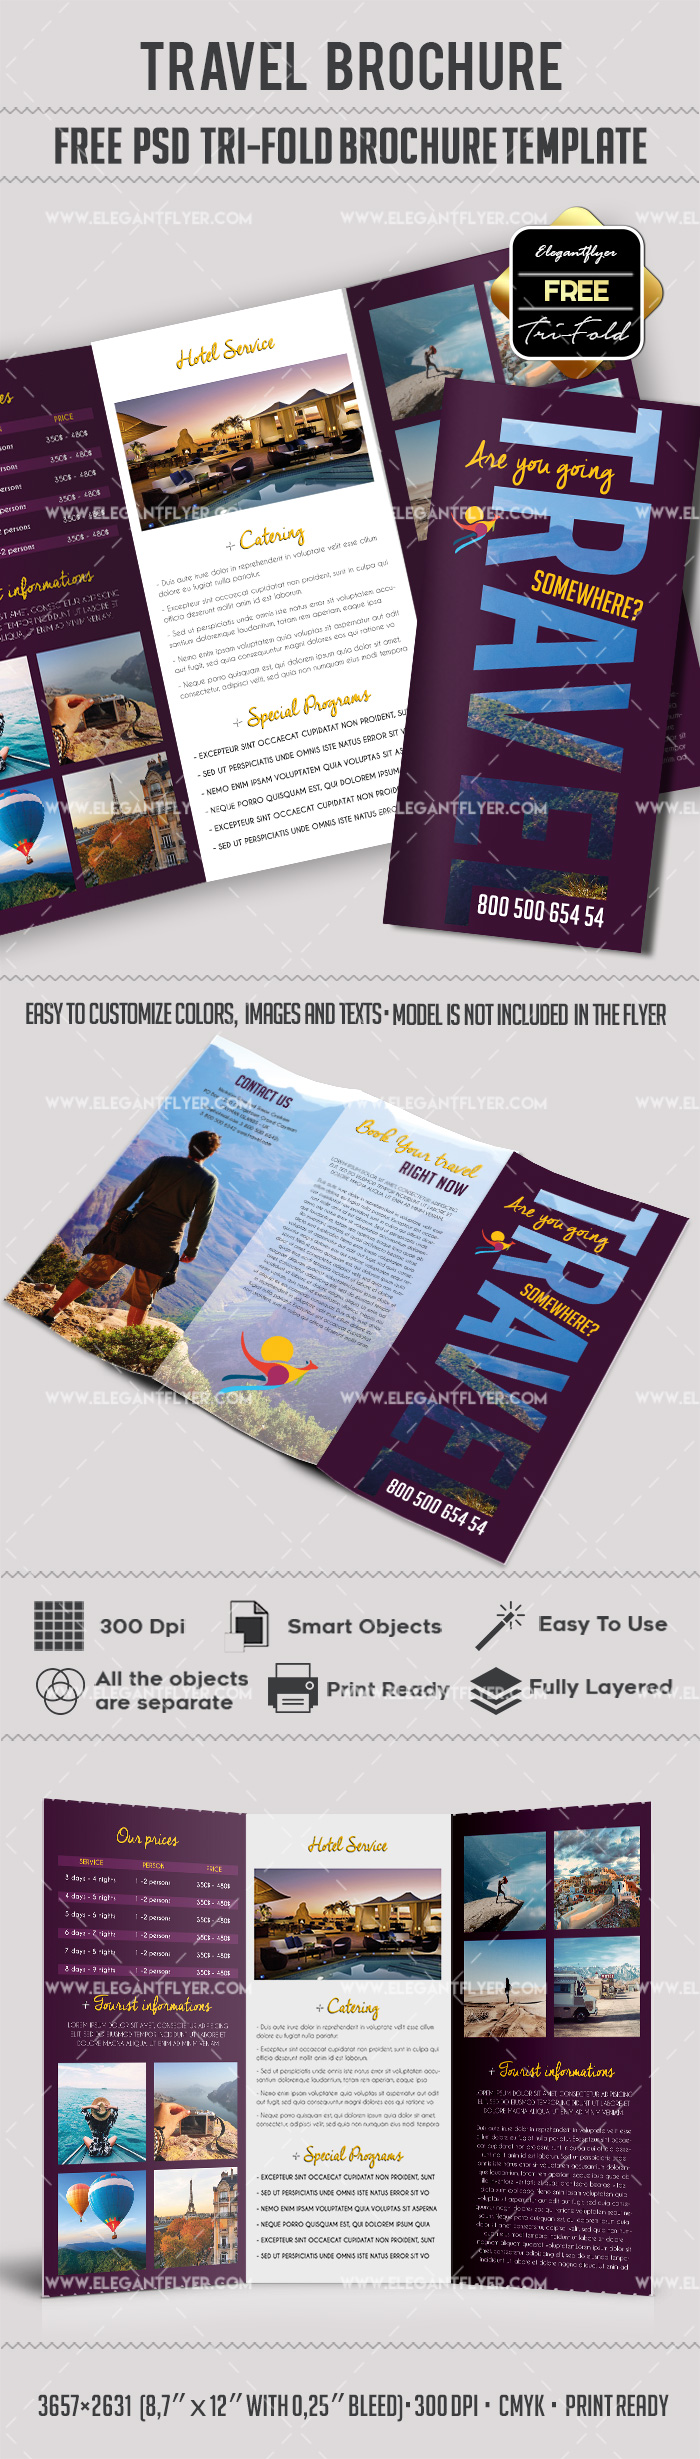 Tri fold travel brochure template by elegantflyer for Tri fold travel brochure template